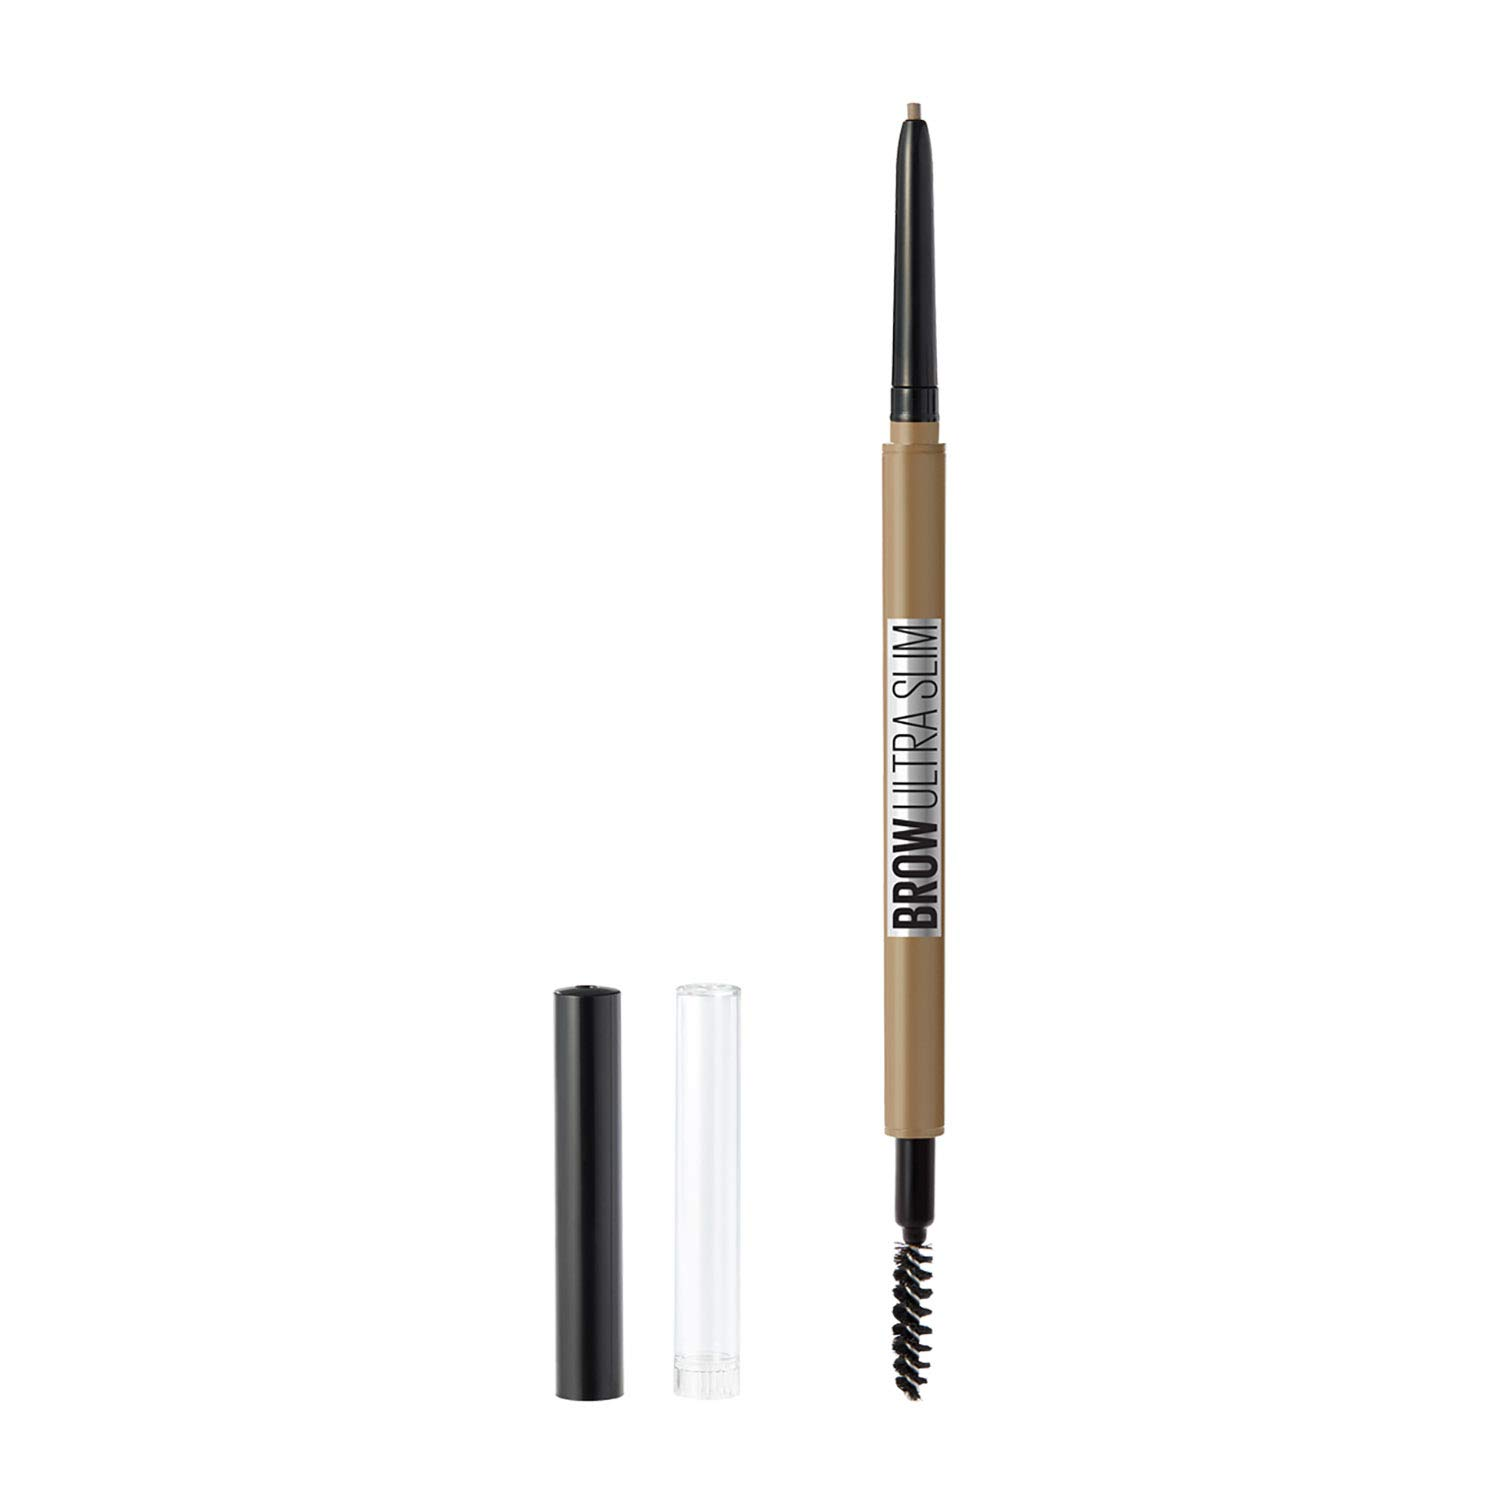 Maybelline New York Brow ultra slim defining eyebrow pencil, Blonde, 0.003 Ounce